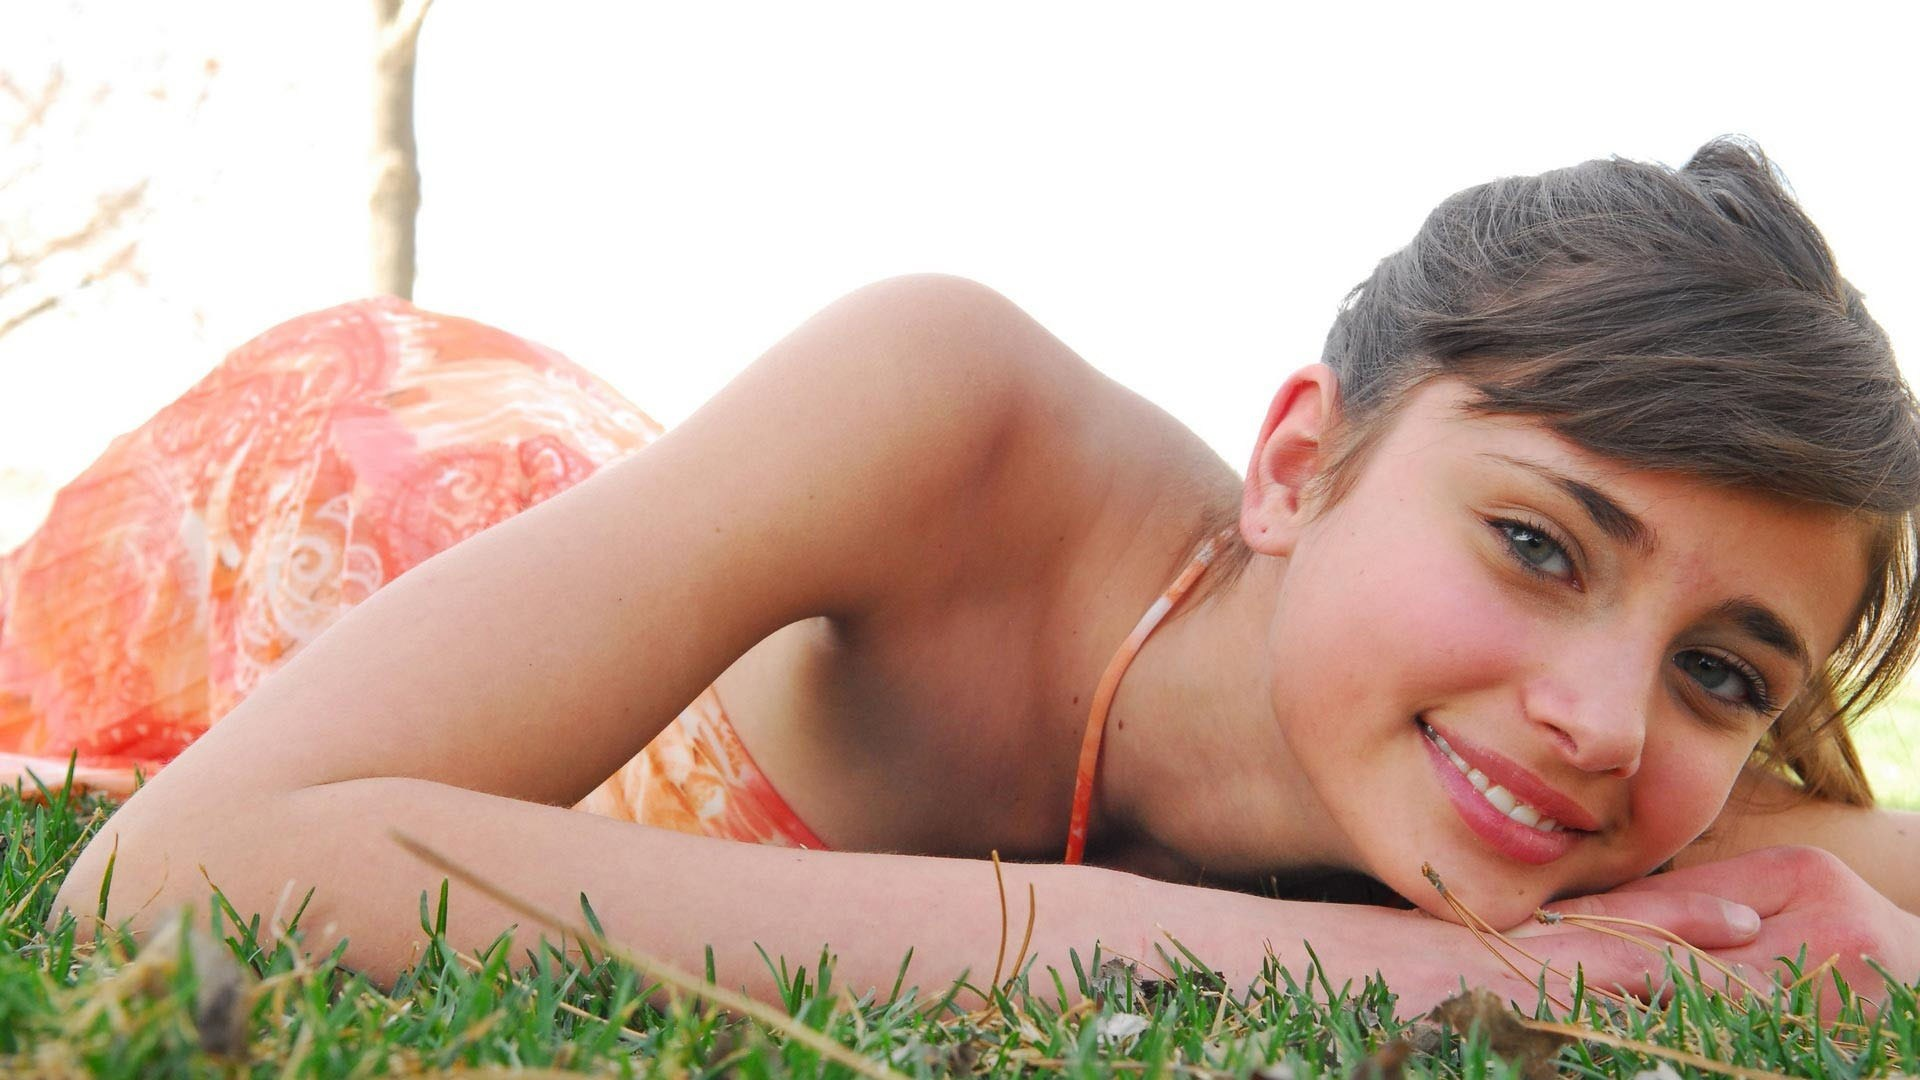 taylor hill smile wallpaper 66686